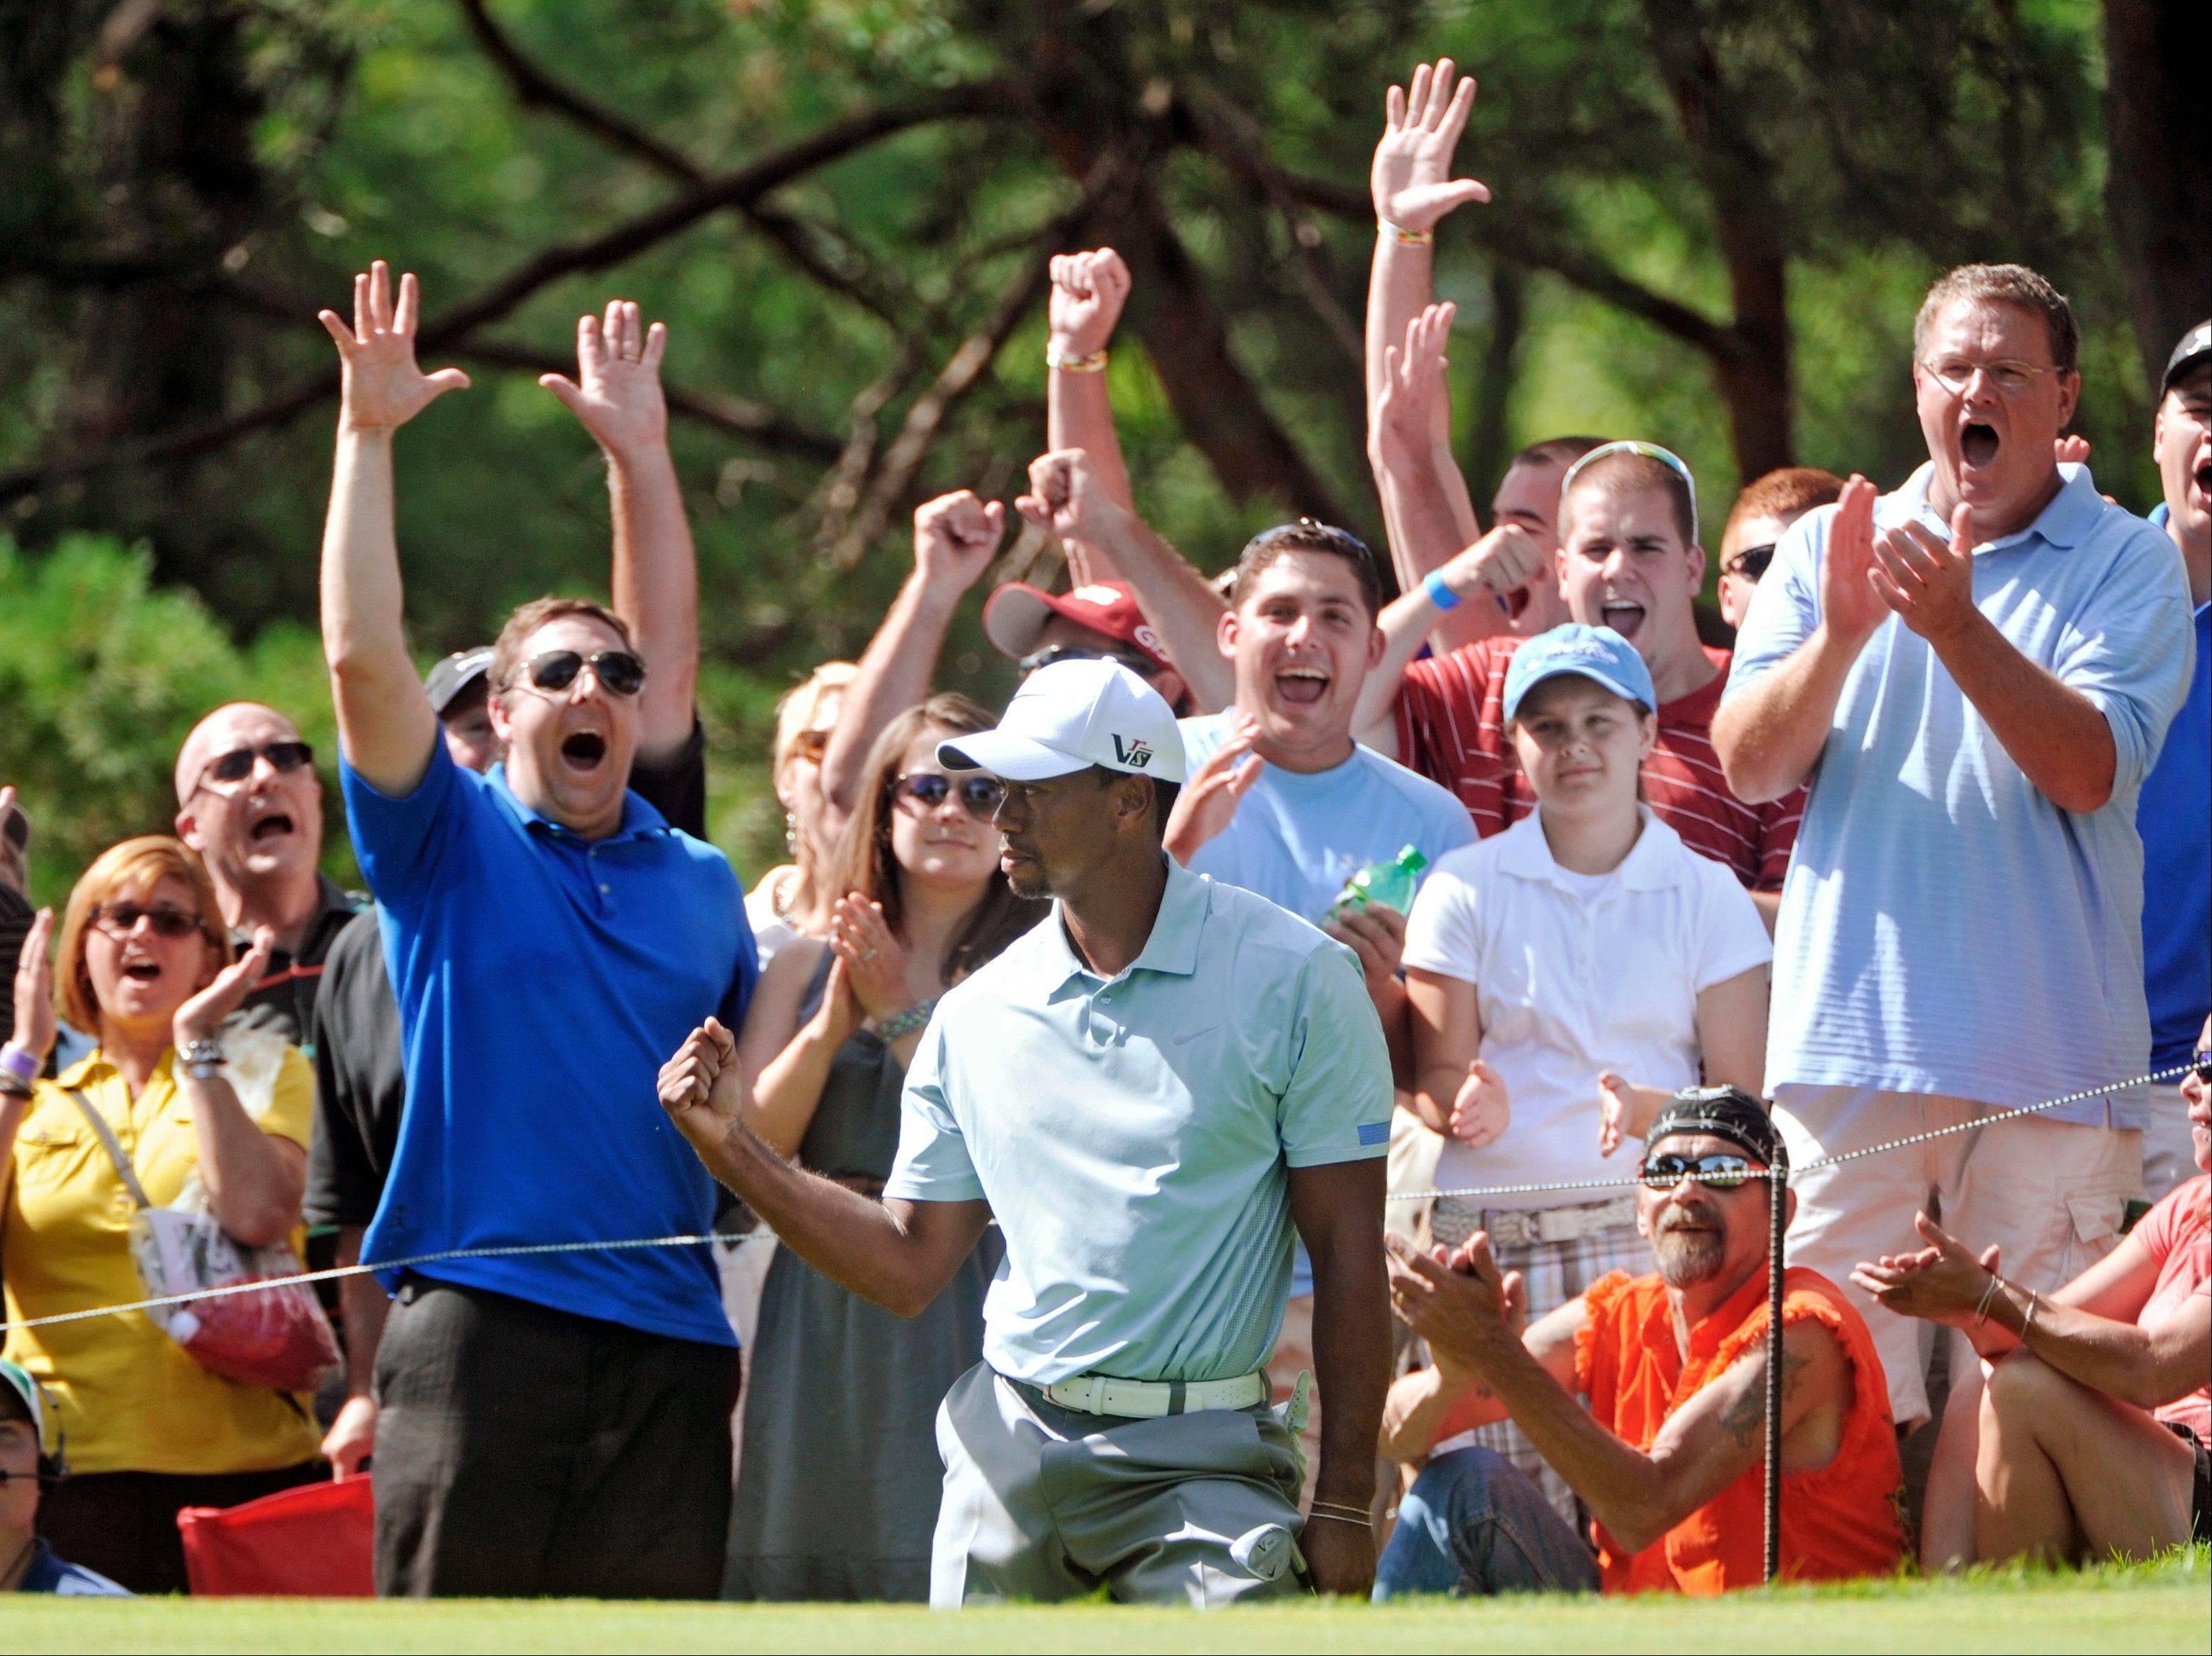 Fans celebrate with Tiger Woods, center, after Woods chipped in for birdie from off the 13th green during the third round of the Bridgestone Invitational golf tournament, Saturday, Aug. 3, 2013, at Firestone Country Club in Akron, Ohio. Woods leads the tournament by seven shots at 15-under par.